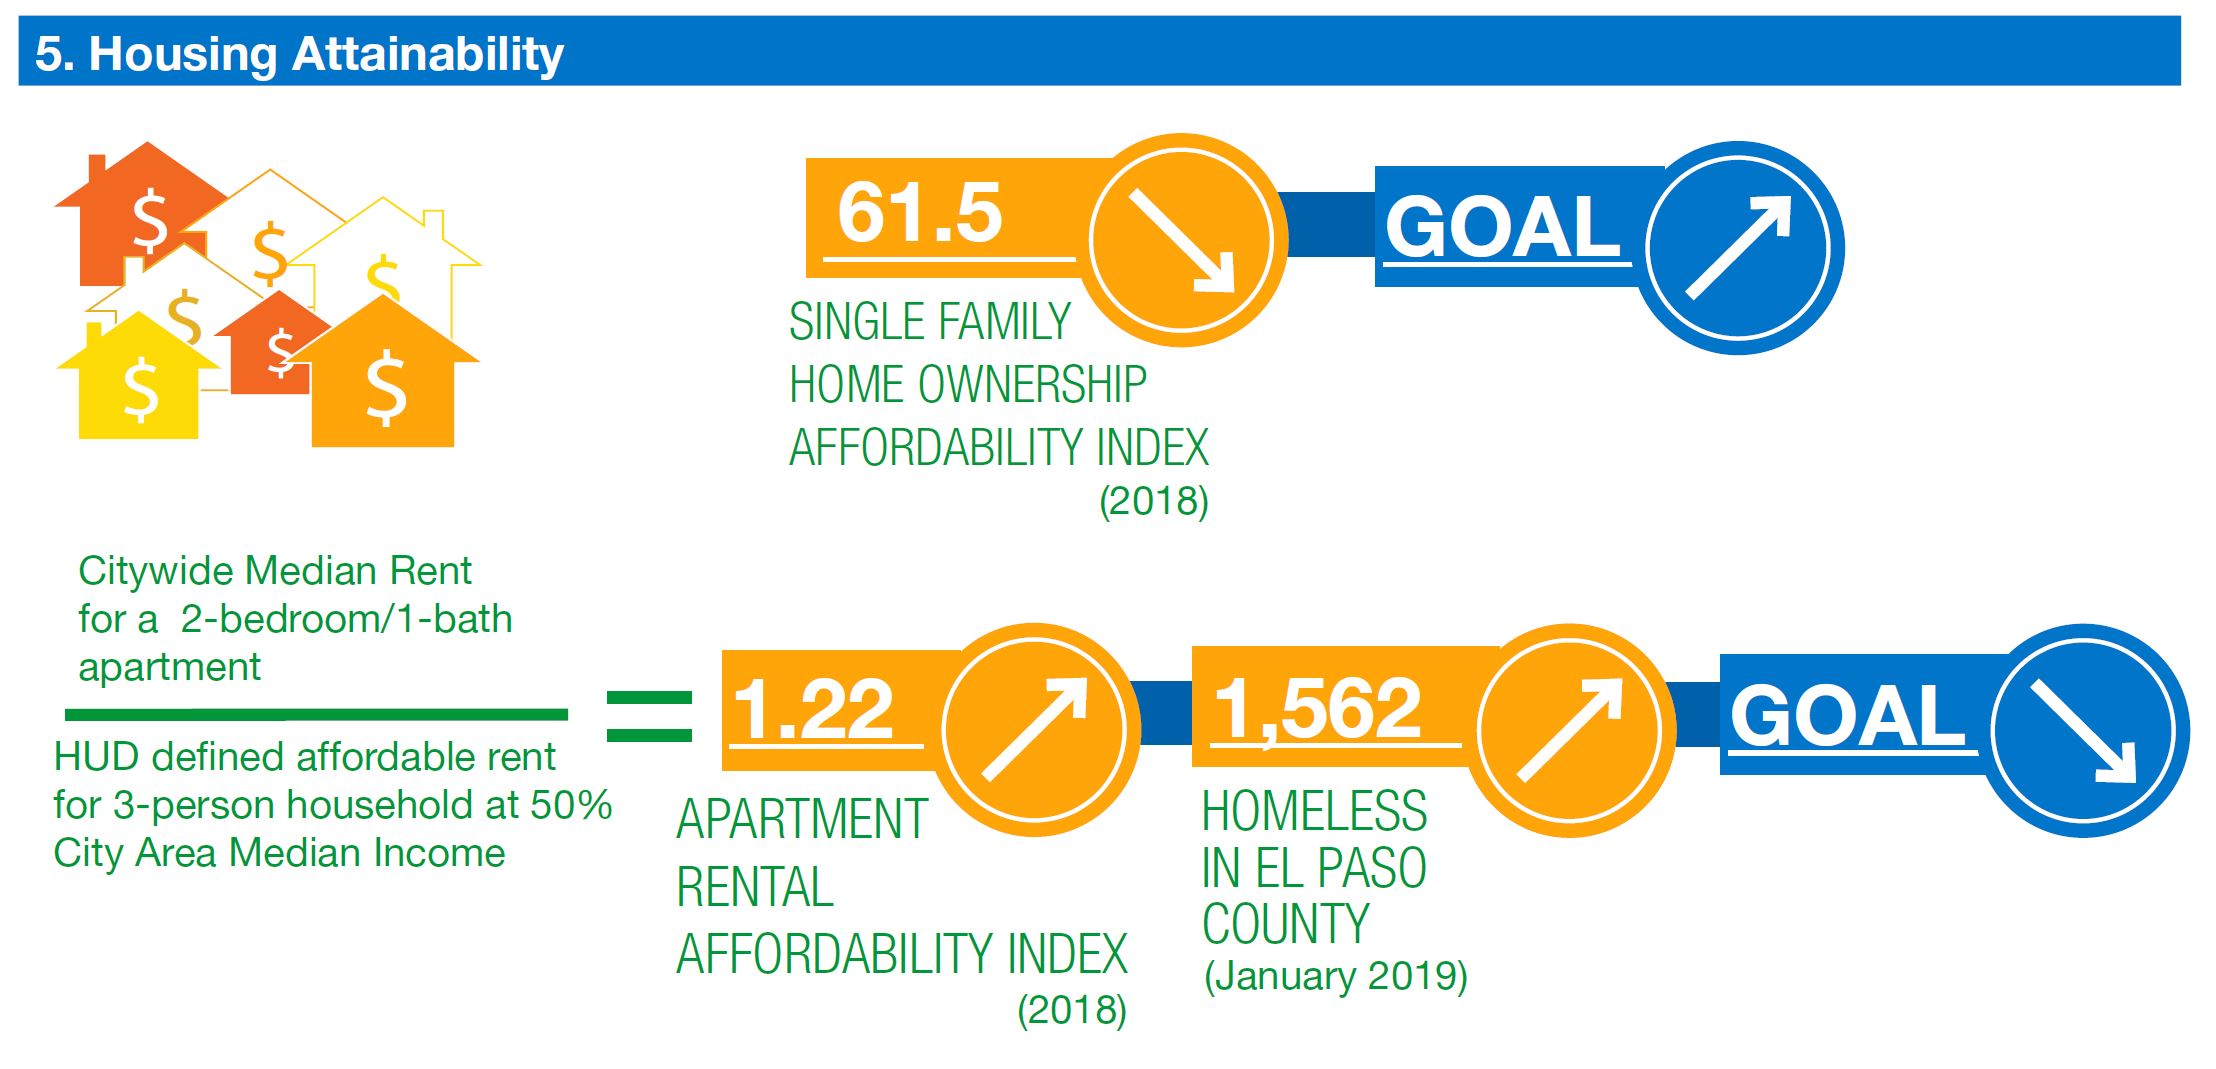 graphic shows single family home ownership index falling (goal rising). apartment rental affordablilty index rising. number of homeless people in el paso county rising (goal decreasing)